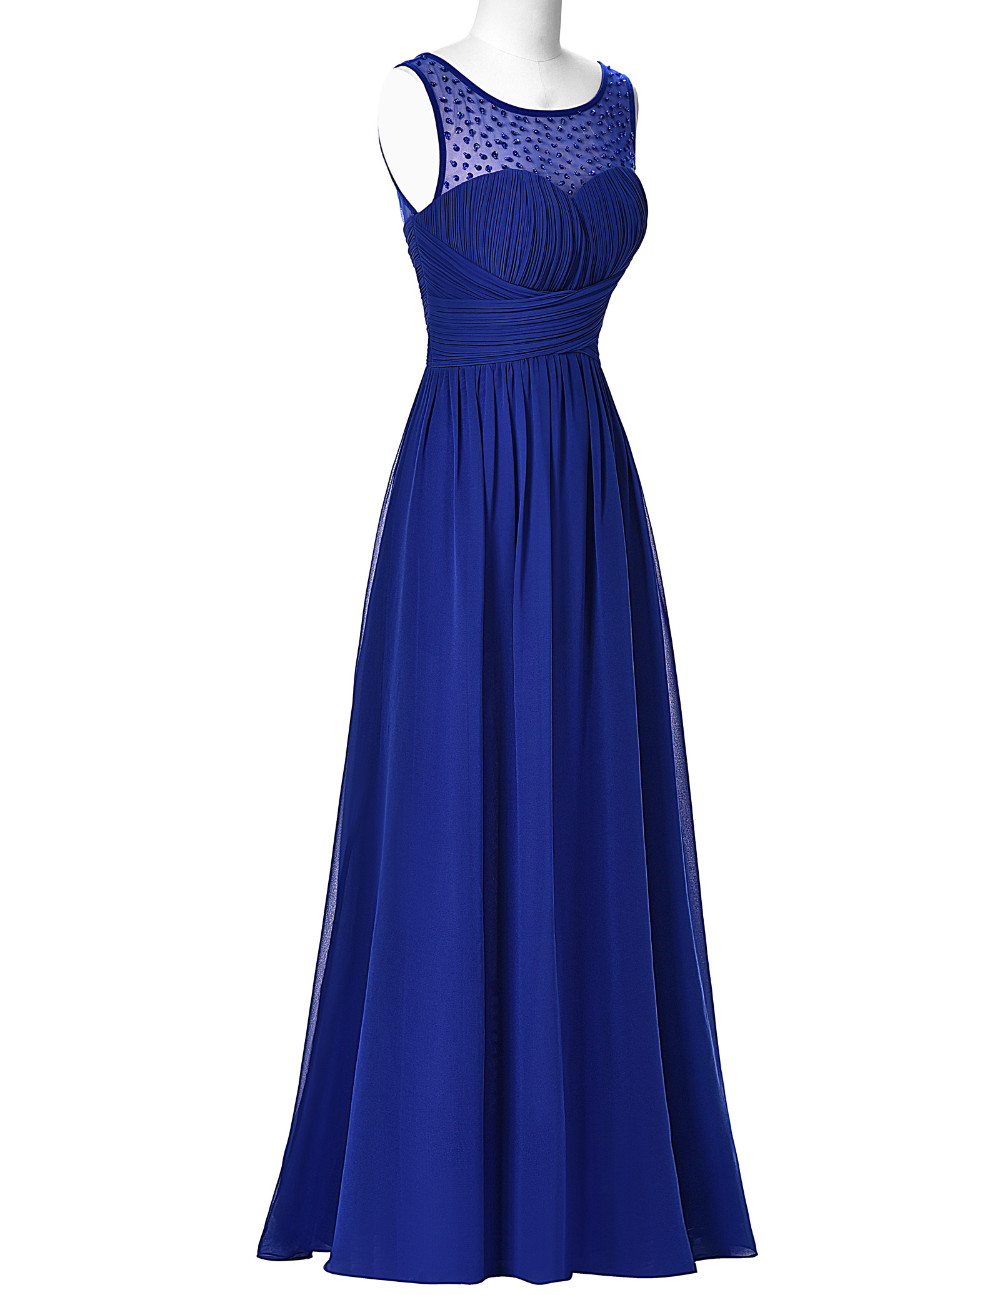 Cheap Hot Sell Long   Prom     Dresses   2016 Sleeveless V-Back Chiffon Ombre   Dress   Strazz Ruched Wedding Dinner   Dress     Prom   Gowns